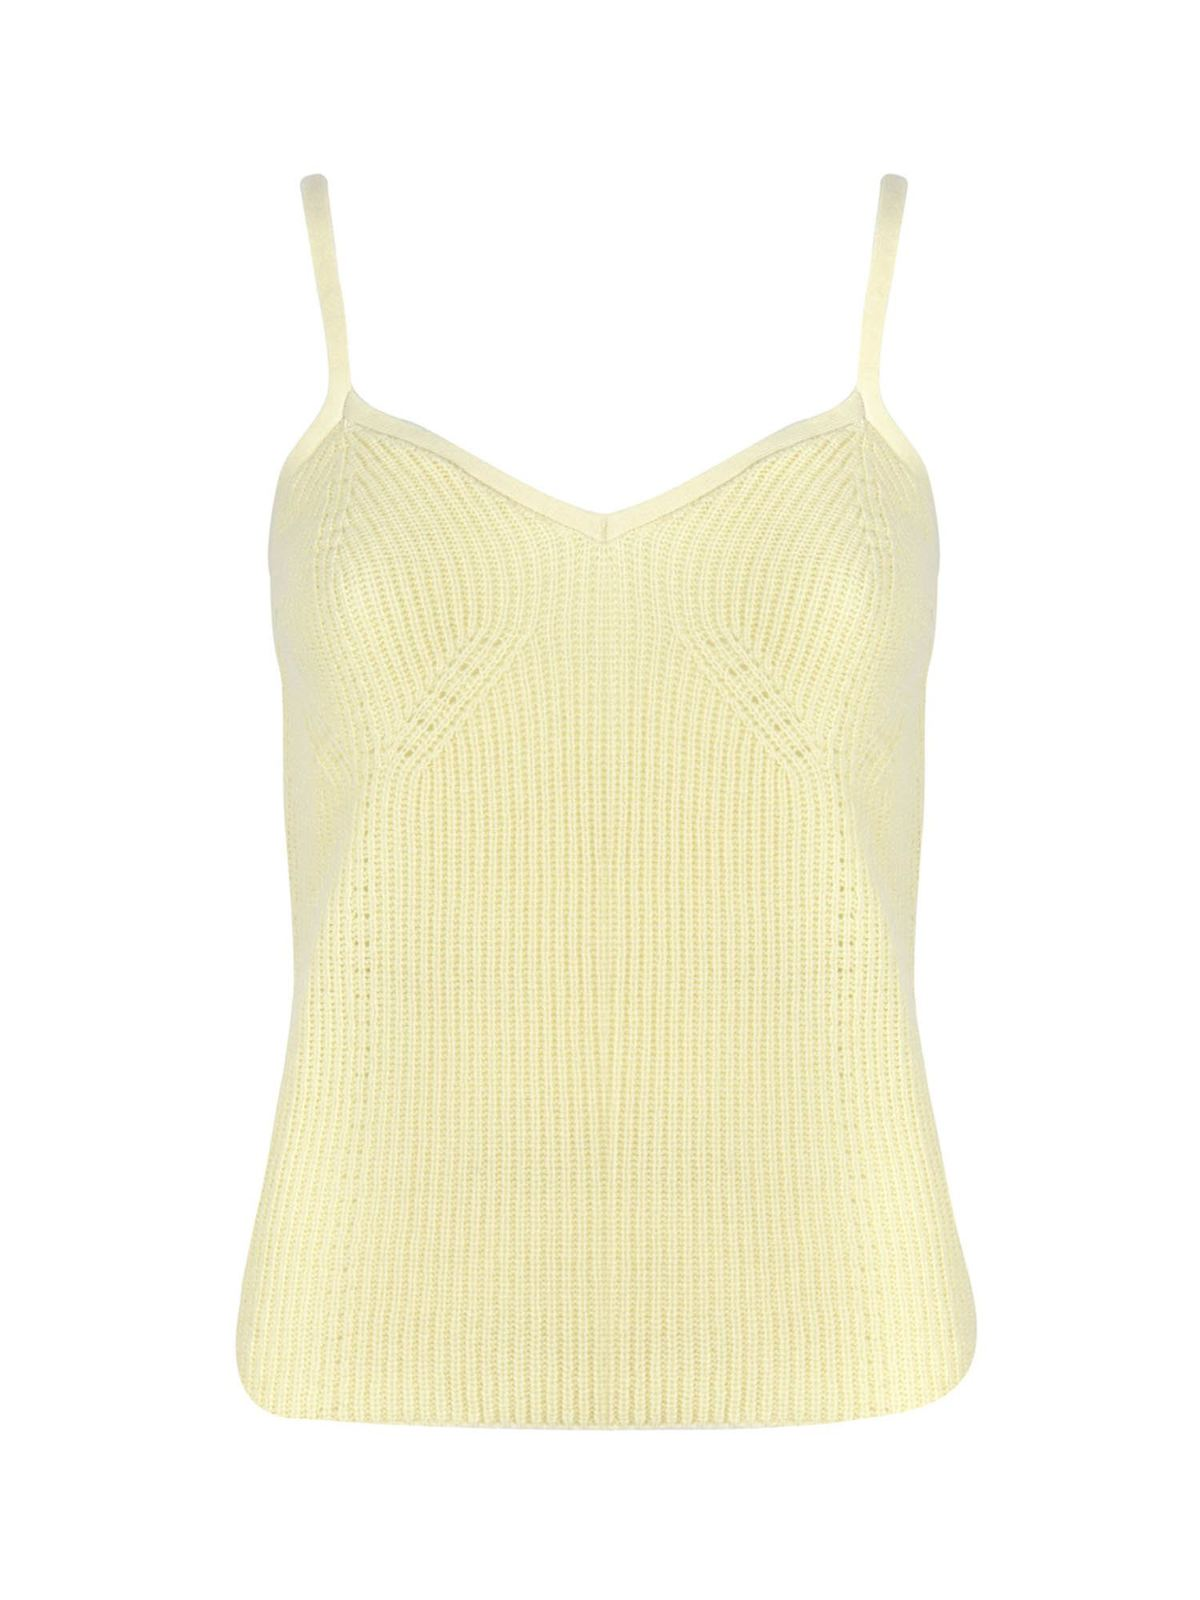 Malo T-shirts STRAPS TOP IN YELLOW